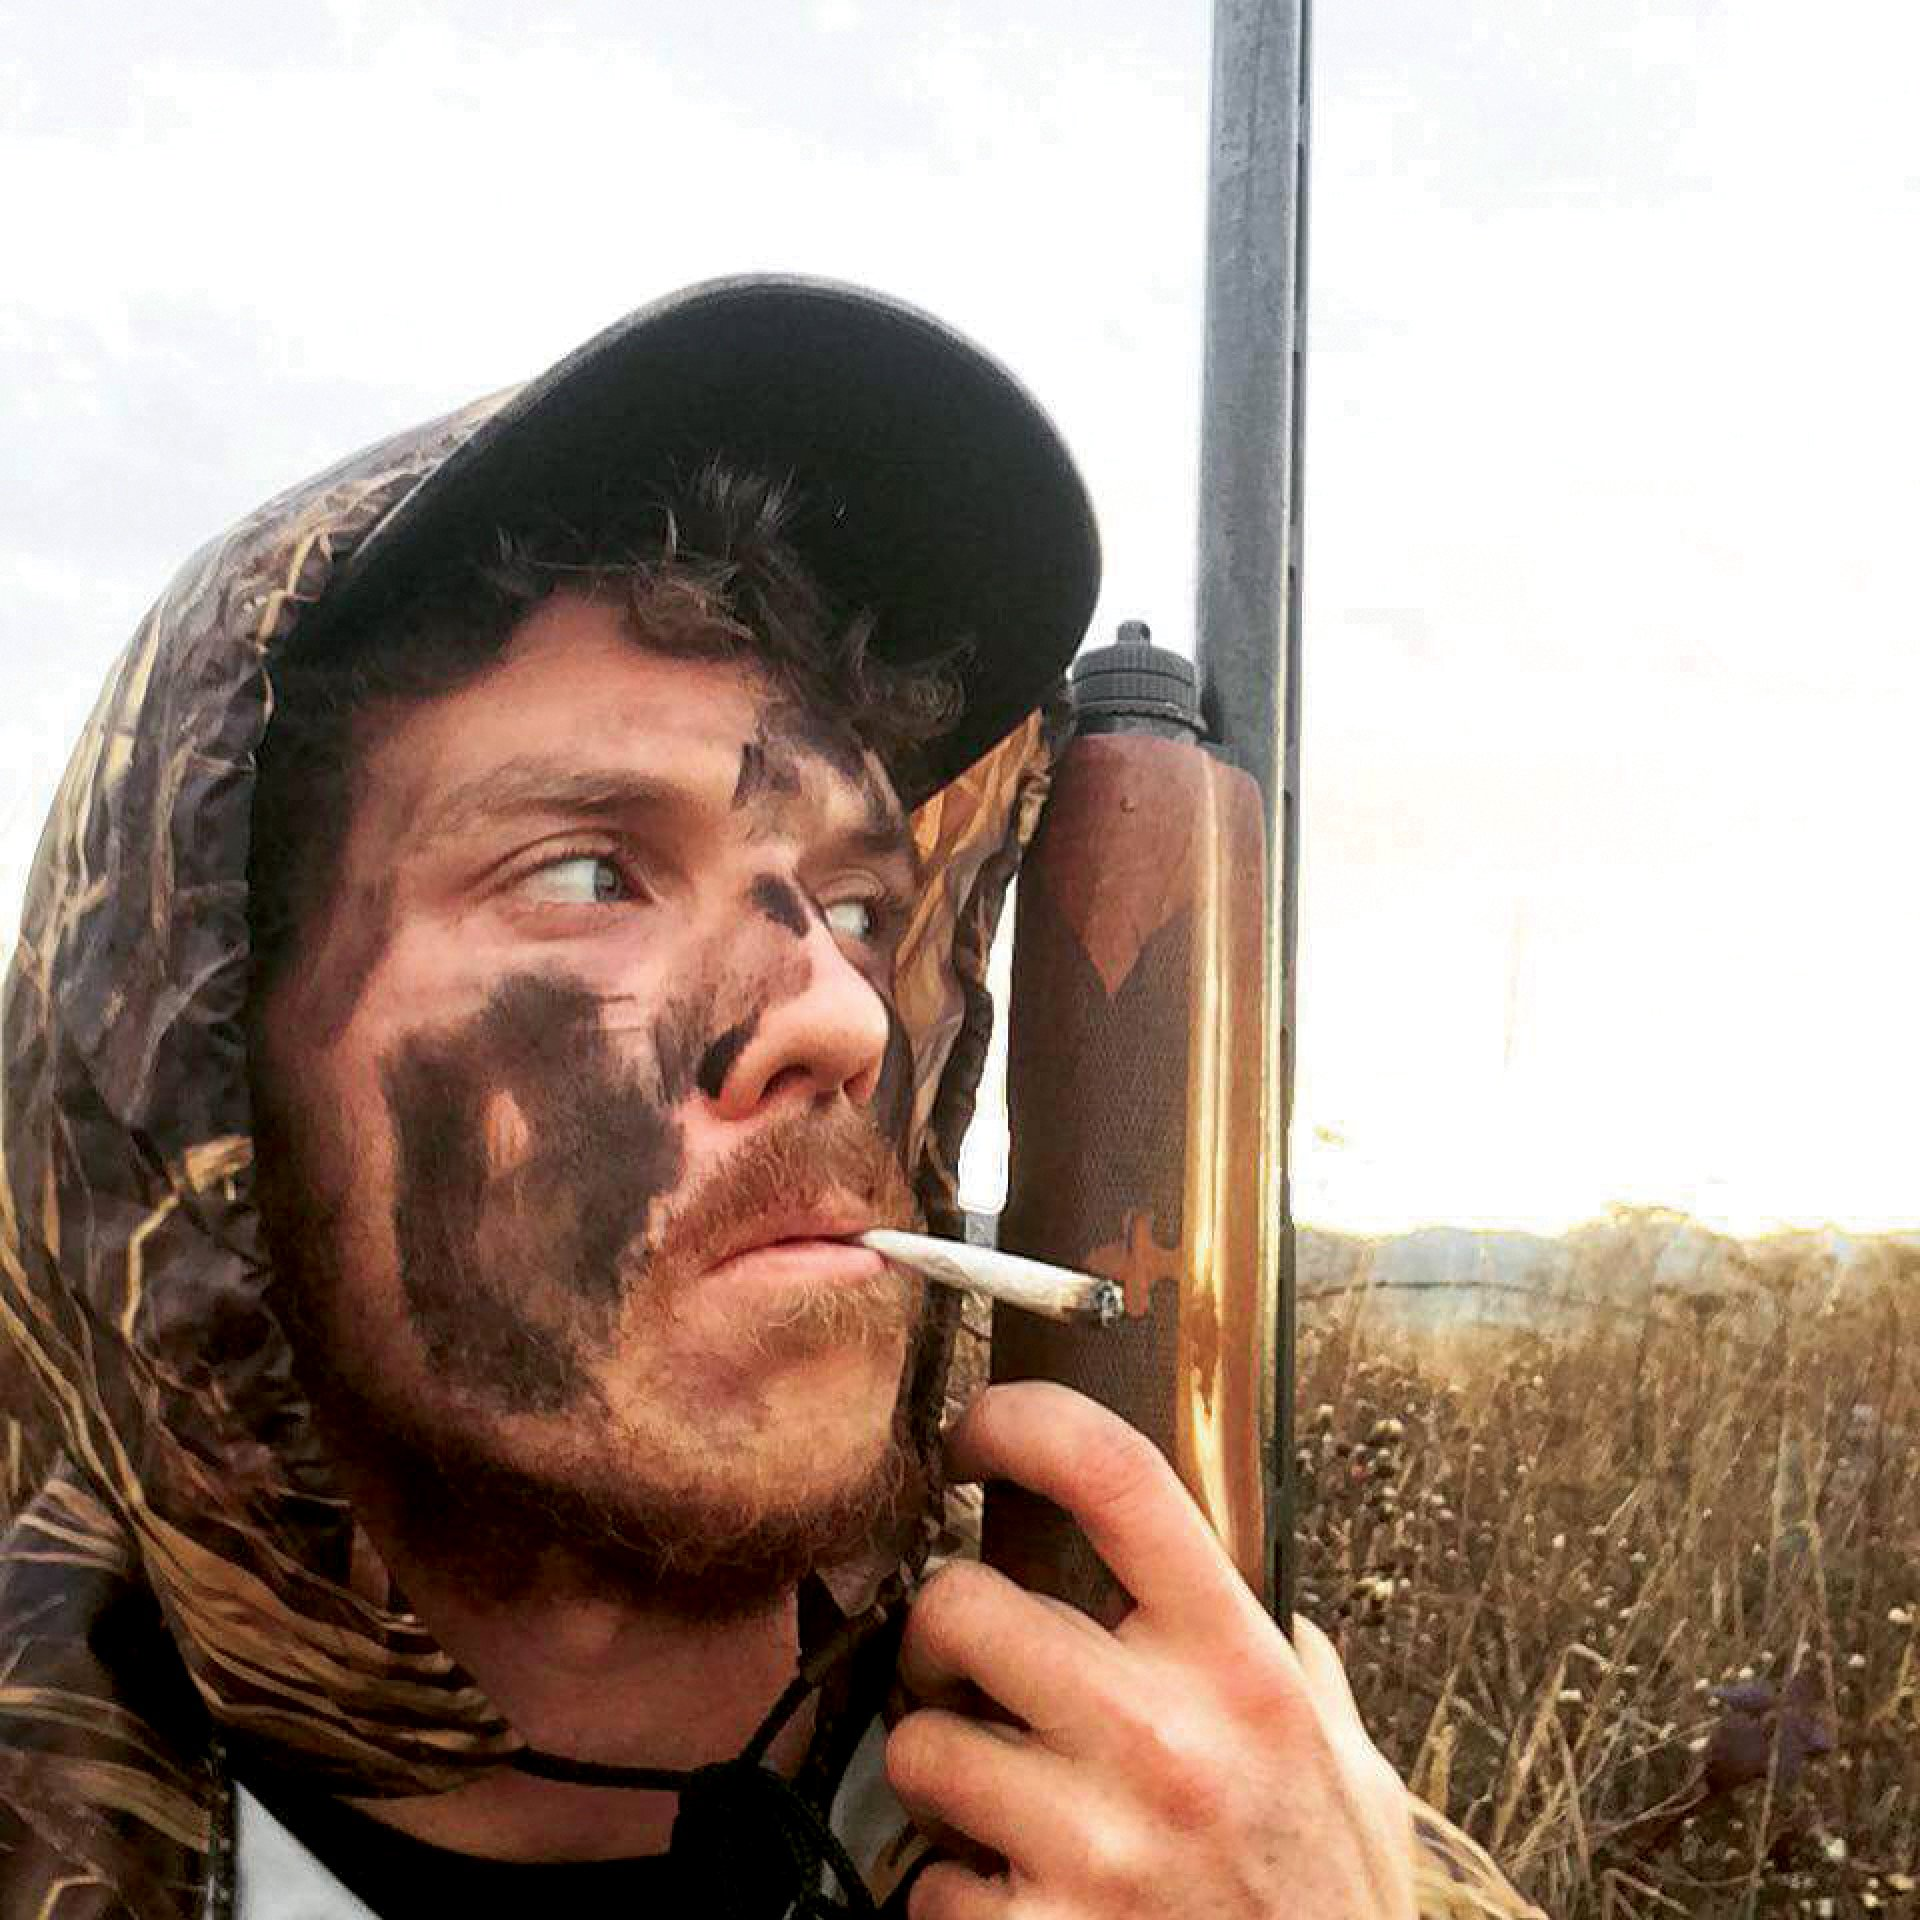 Humboldt resident and registered gun owner Liam Doherty in the midst of a hunting excursion. Photo courtesy of Liam Doherty.